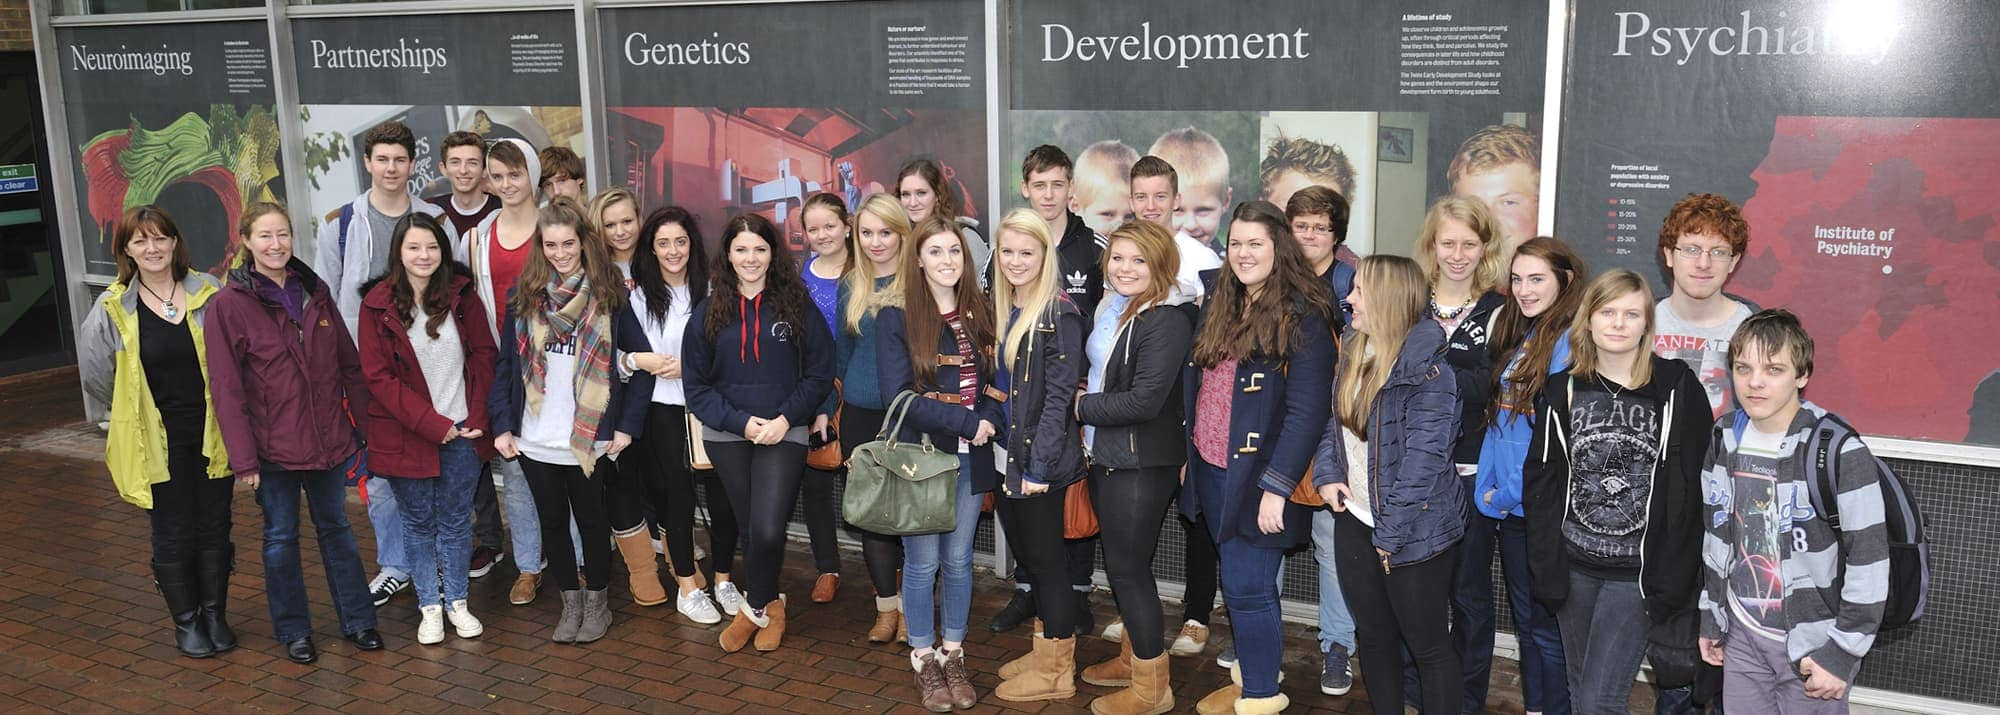 Psychology and Sociology School Trips and Tours to London   NST